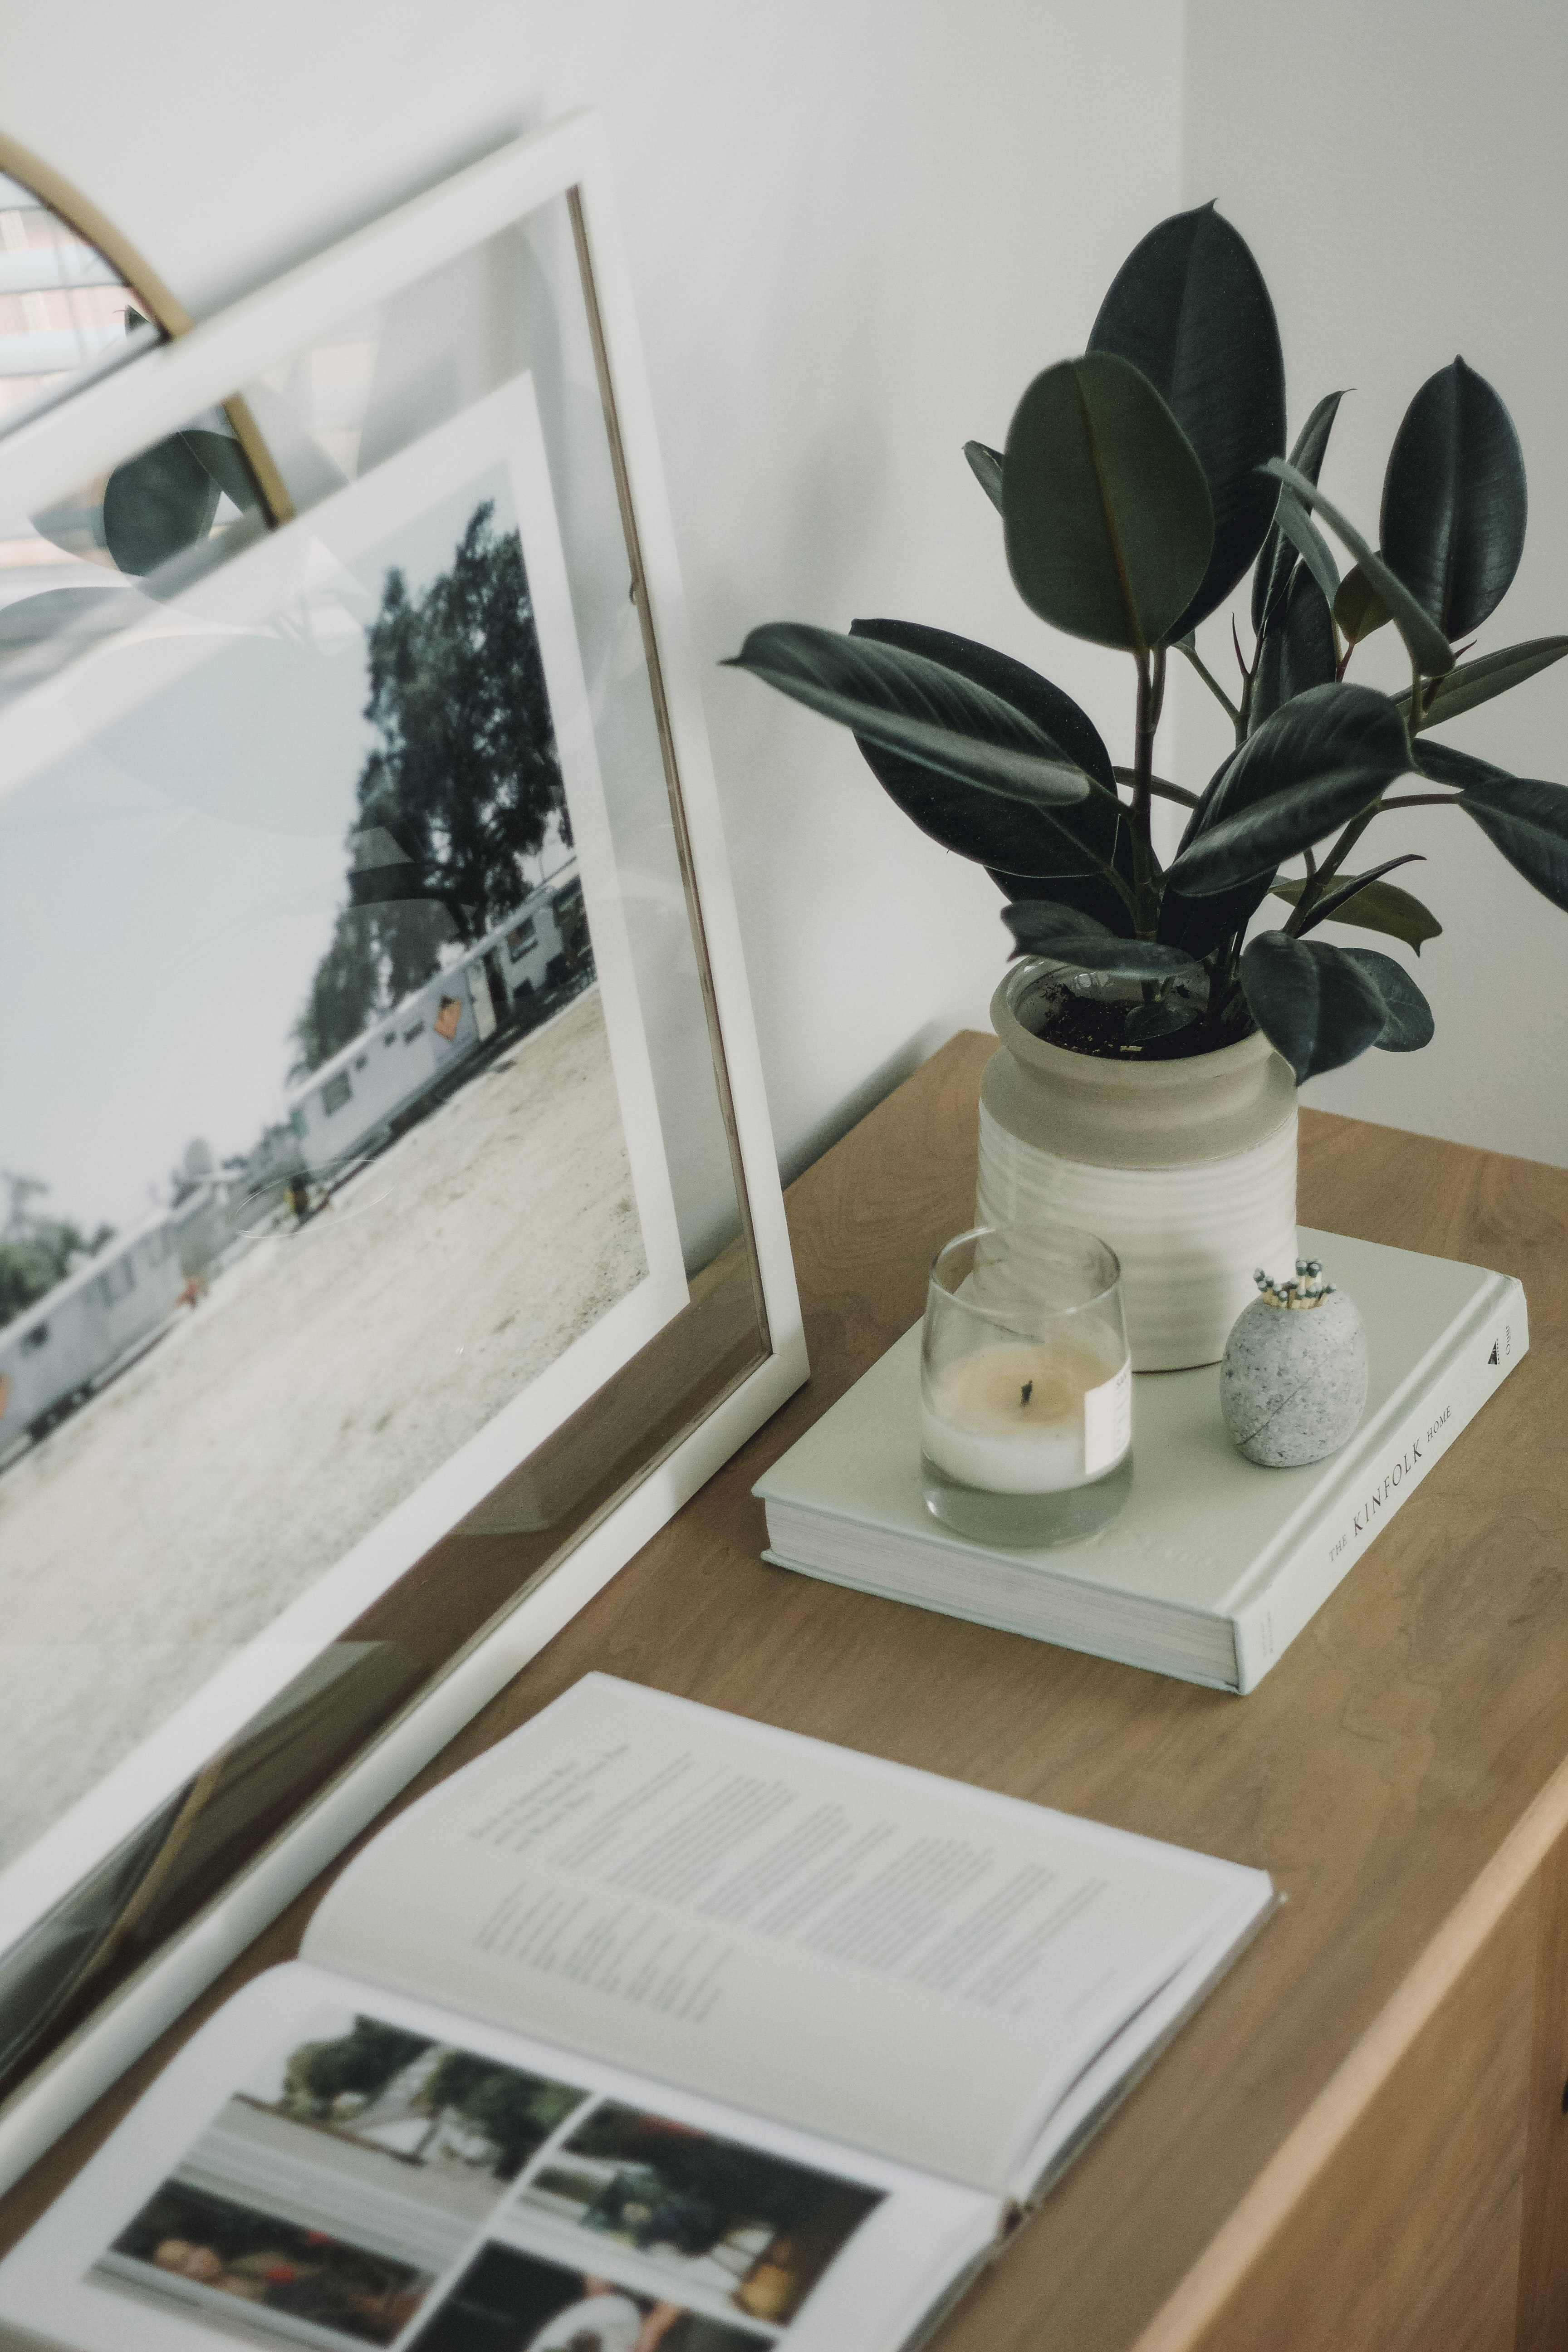 green rubber plant in white jar